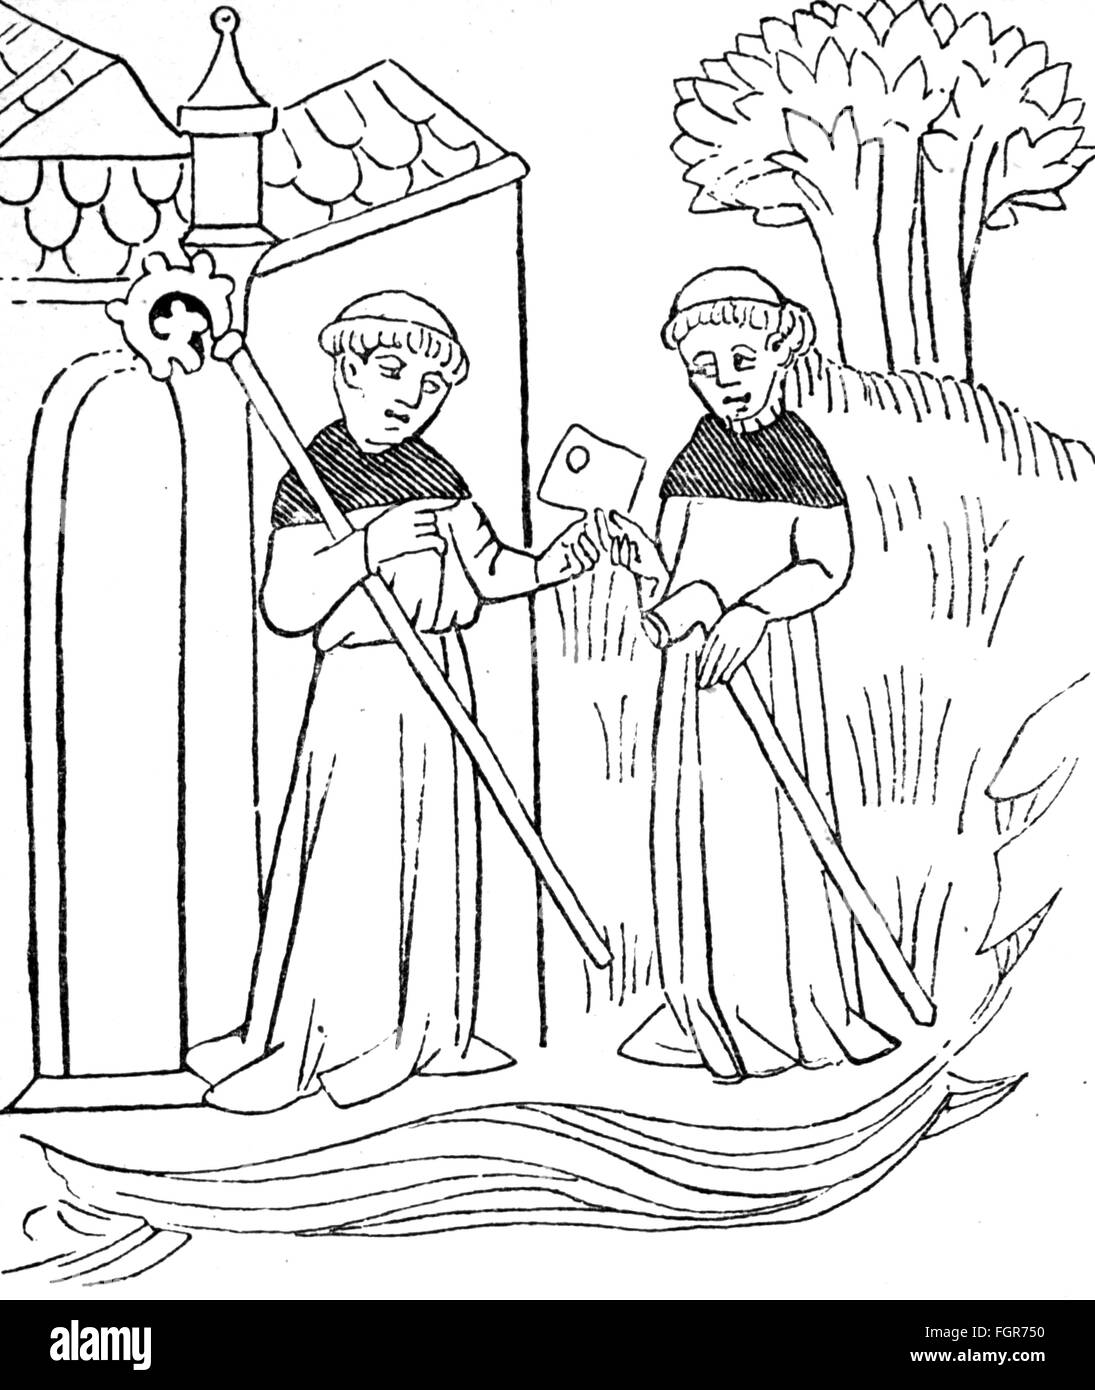 mail, postman, messengers between monasteries, wood engraving, 19th century, graphic, graphics, Middle Ages, medieval, - Stock Image